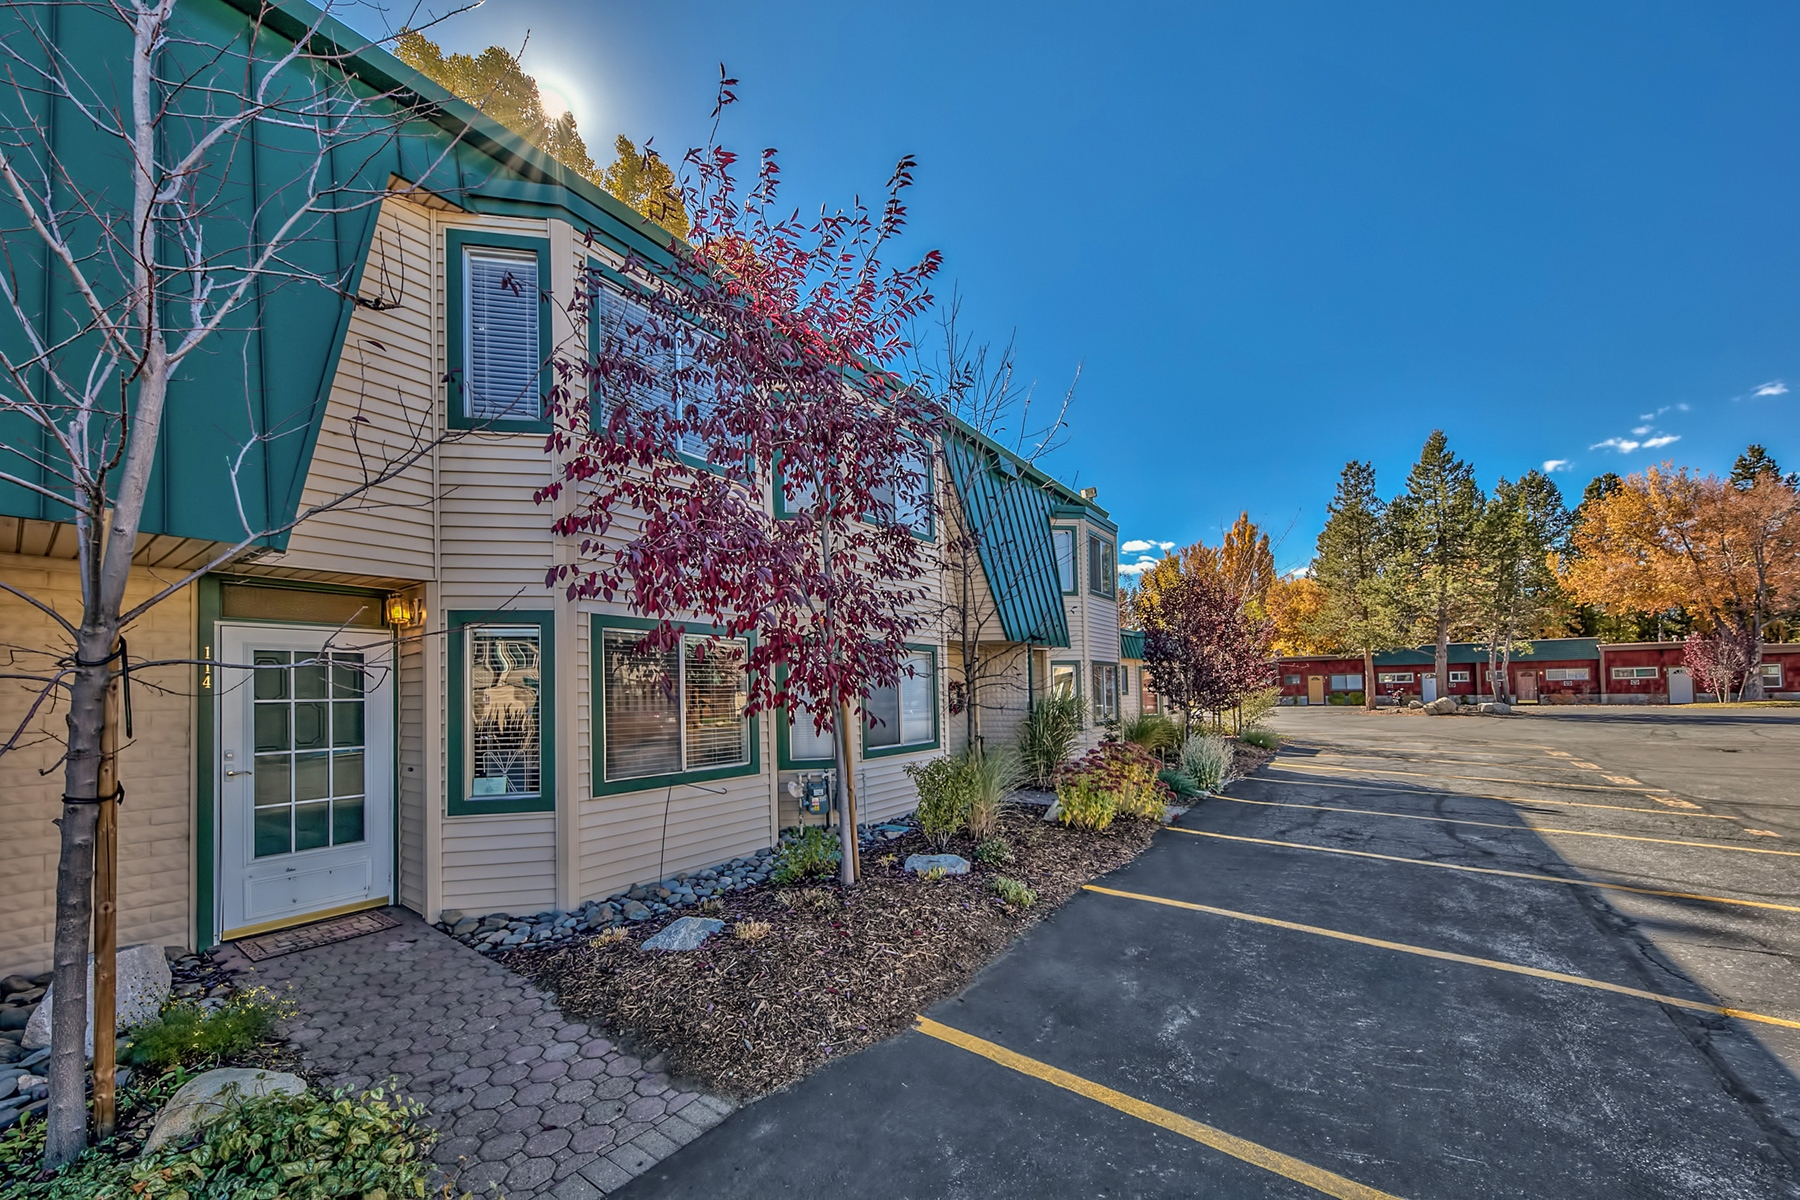 Additional photo for property listing at 439 Ala wai Blvd #114, South Lake Tahoe, Ca 96150 439 Ala Wai Blvd #114 South Lake Tahoe, California 96150 United States